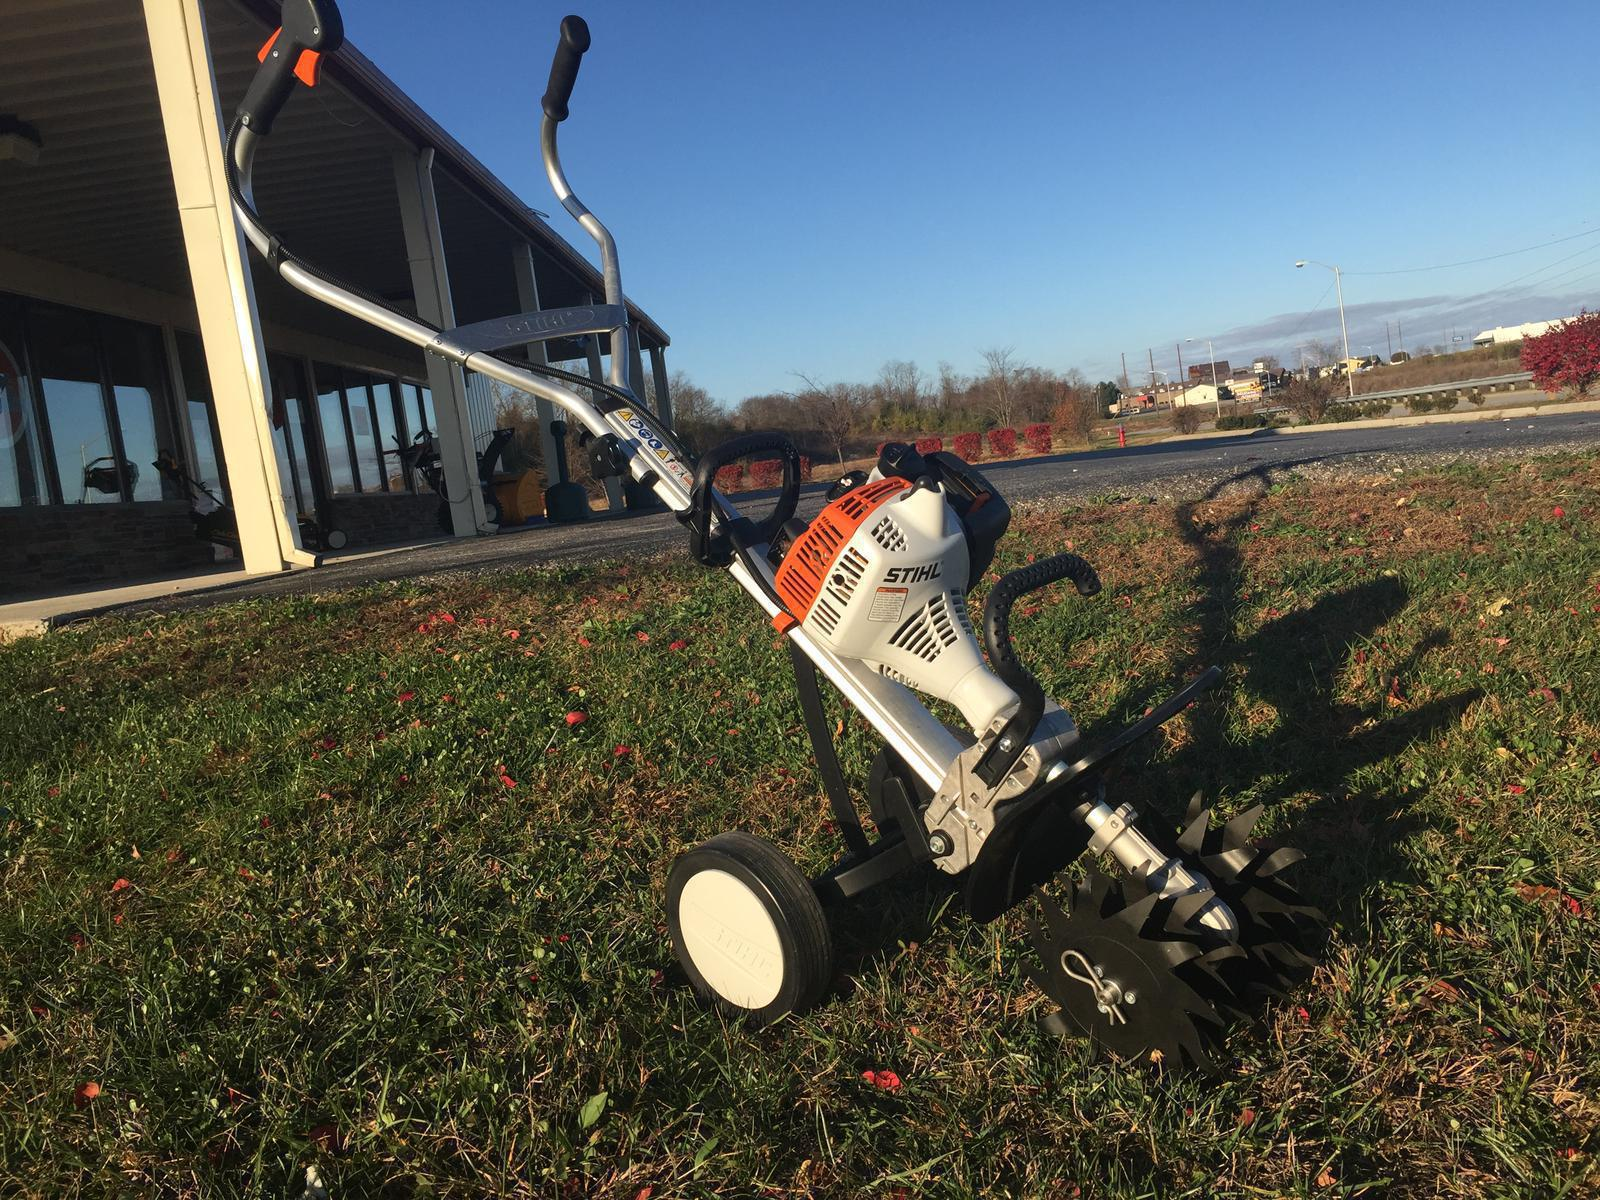 2018 Stihl Mm 55 Yard Boss W Wheel Kit For In Maysville Ky C D Electronics The Shack 606 759 5027